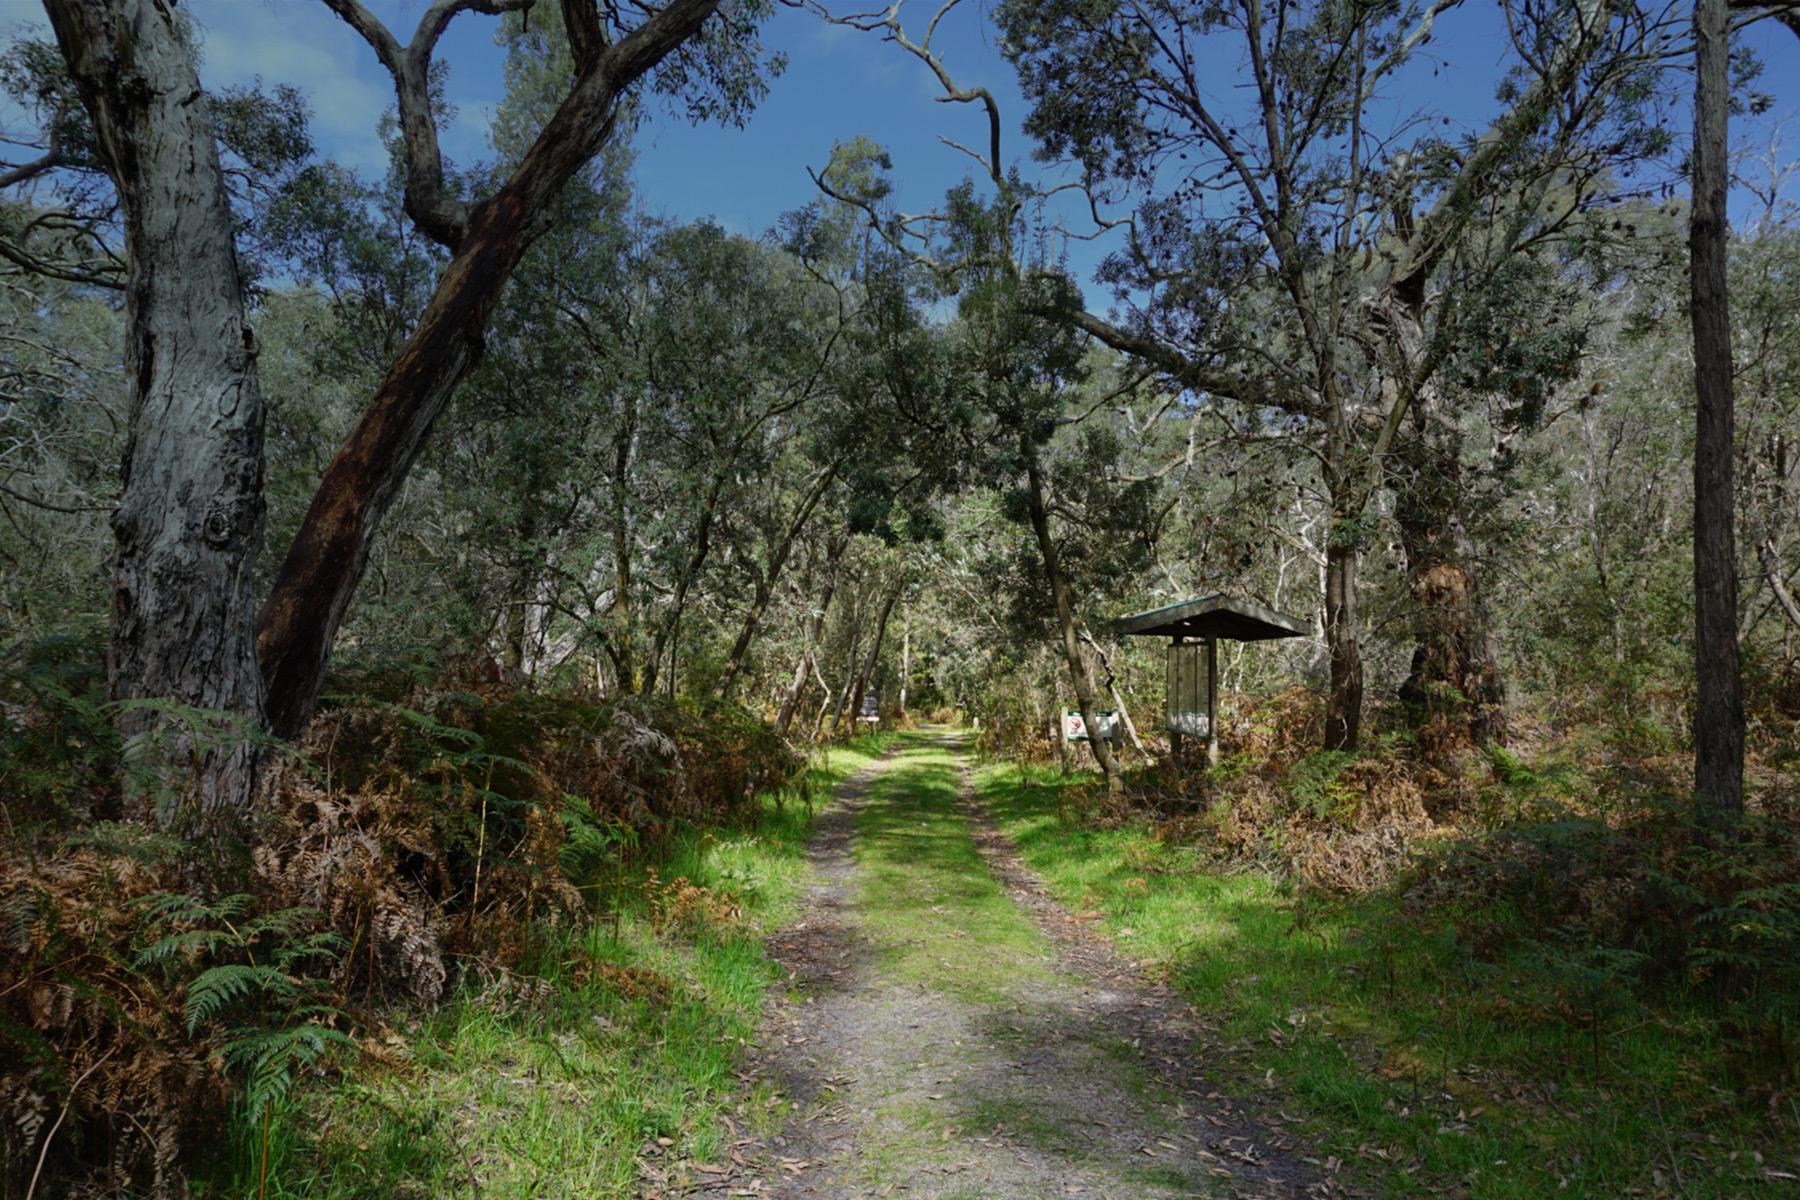 Green bush walk in the Mornington Peninsula